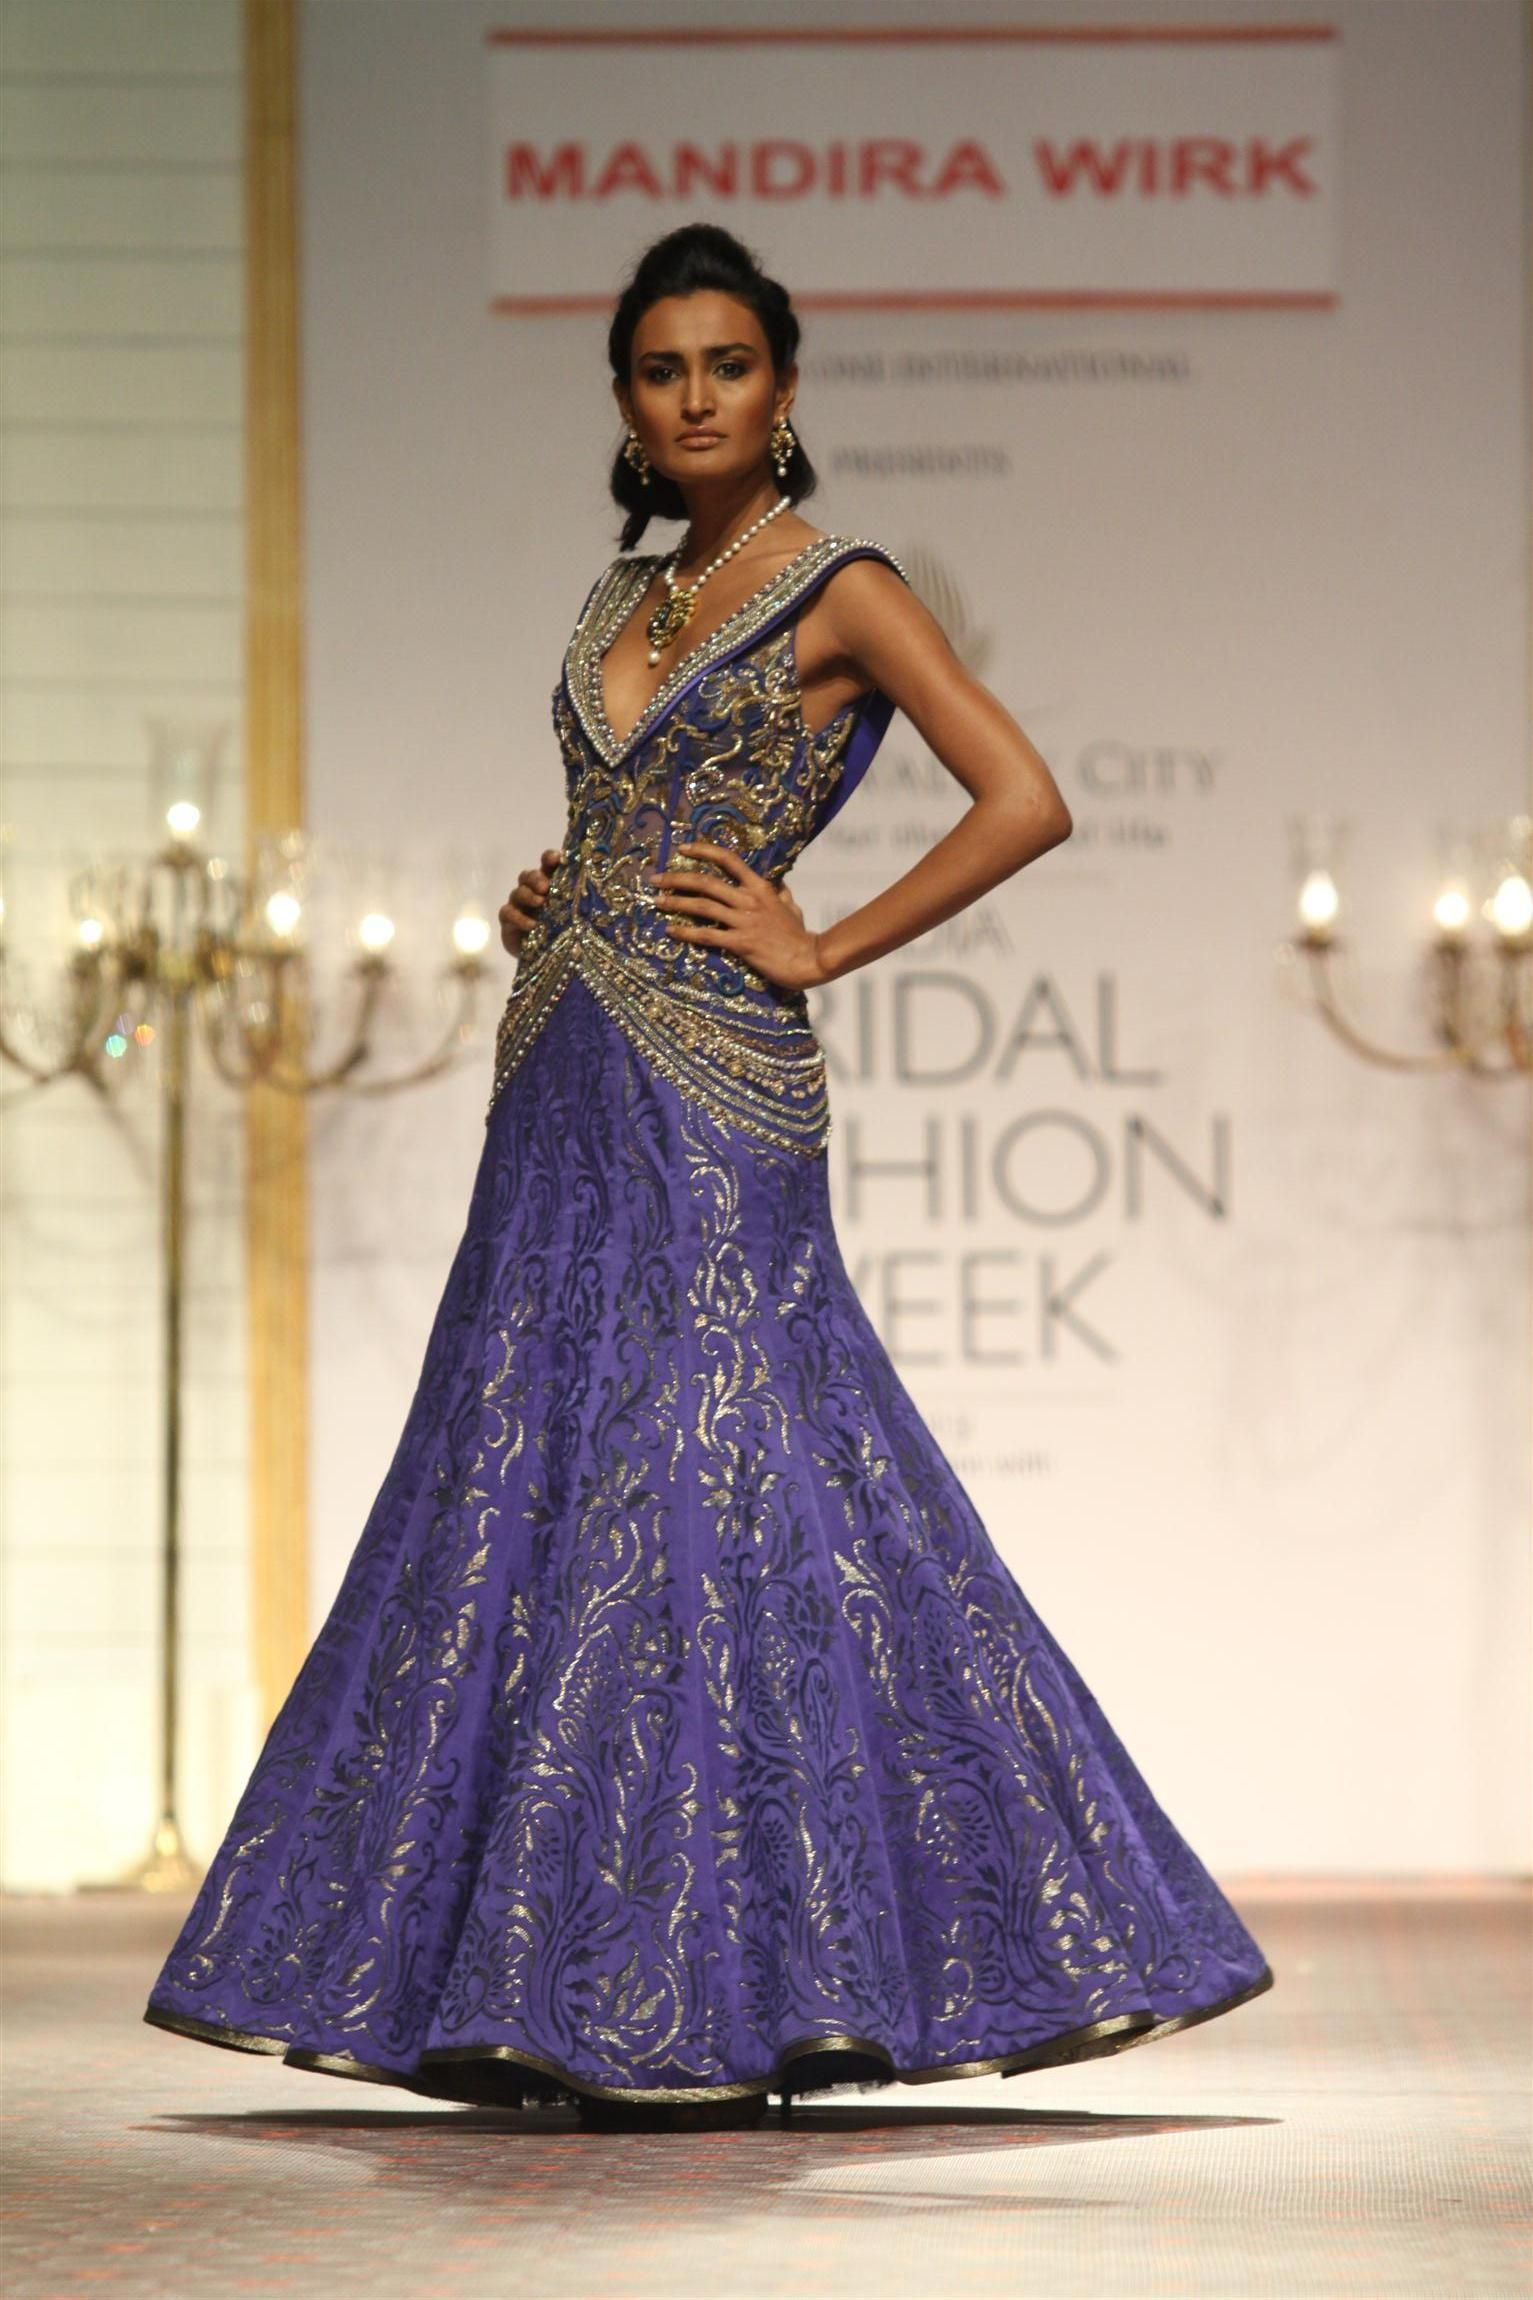 Gorgeous purple and gold wedding gown from Mandira Wirk at Aamby ...